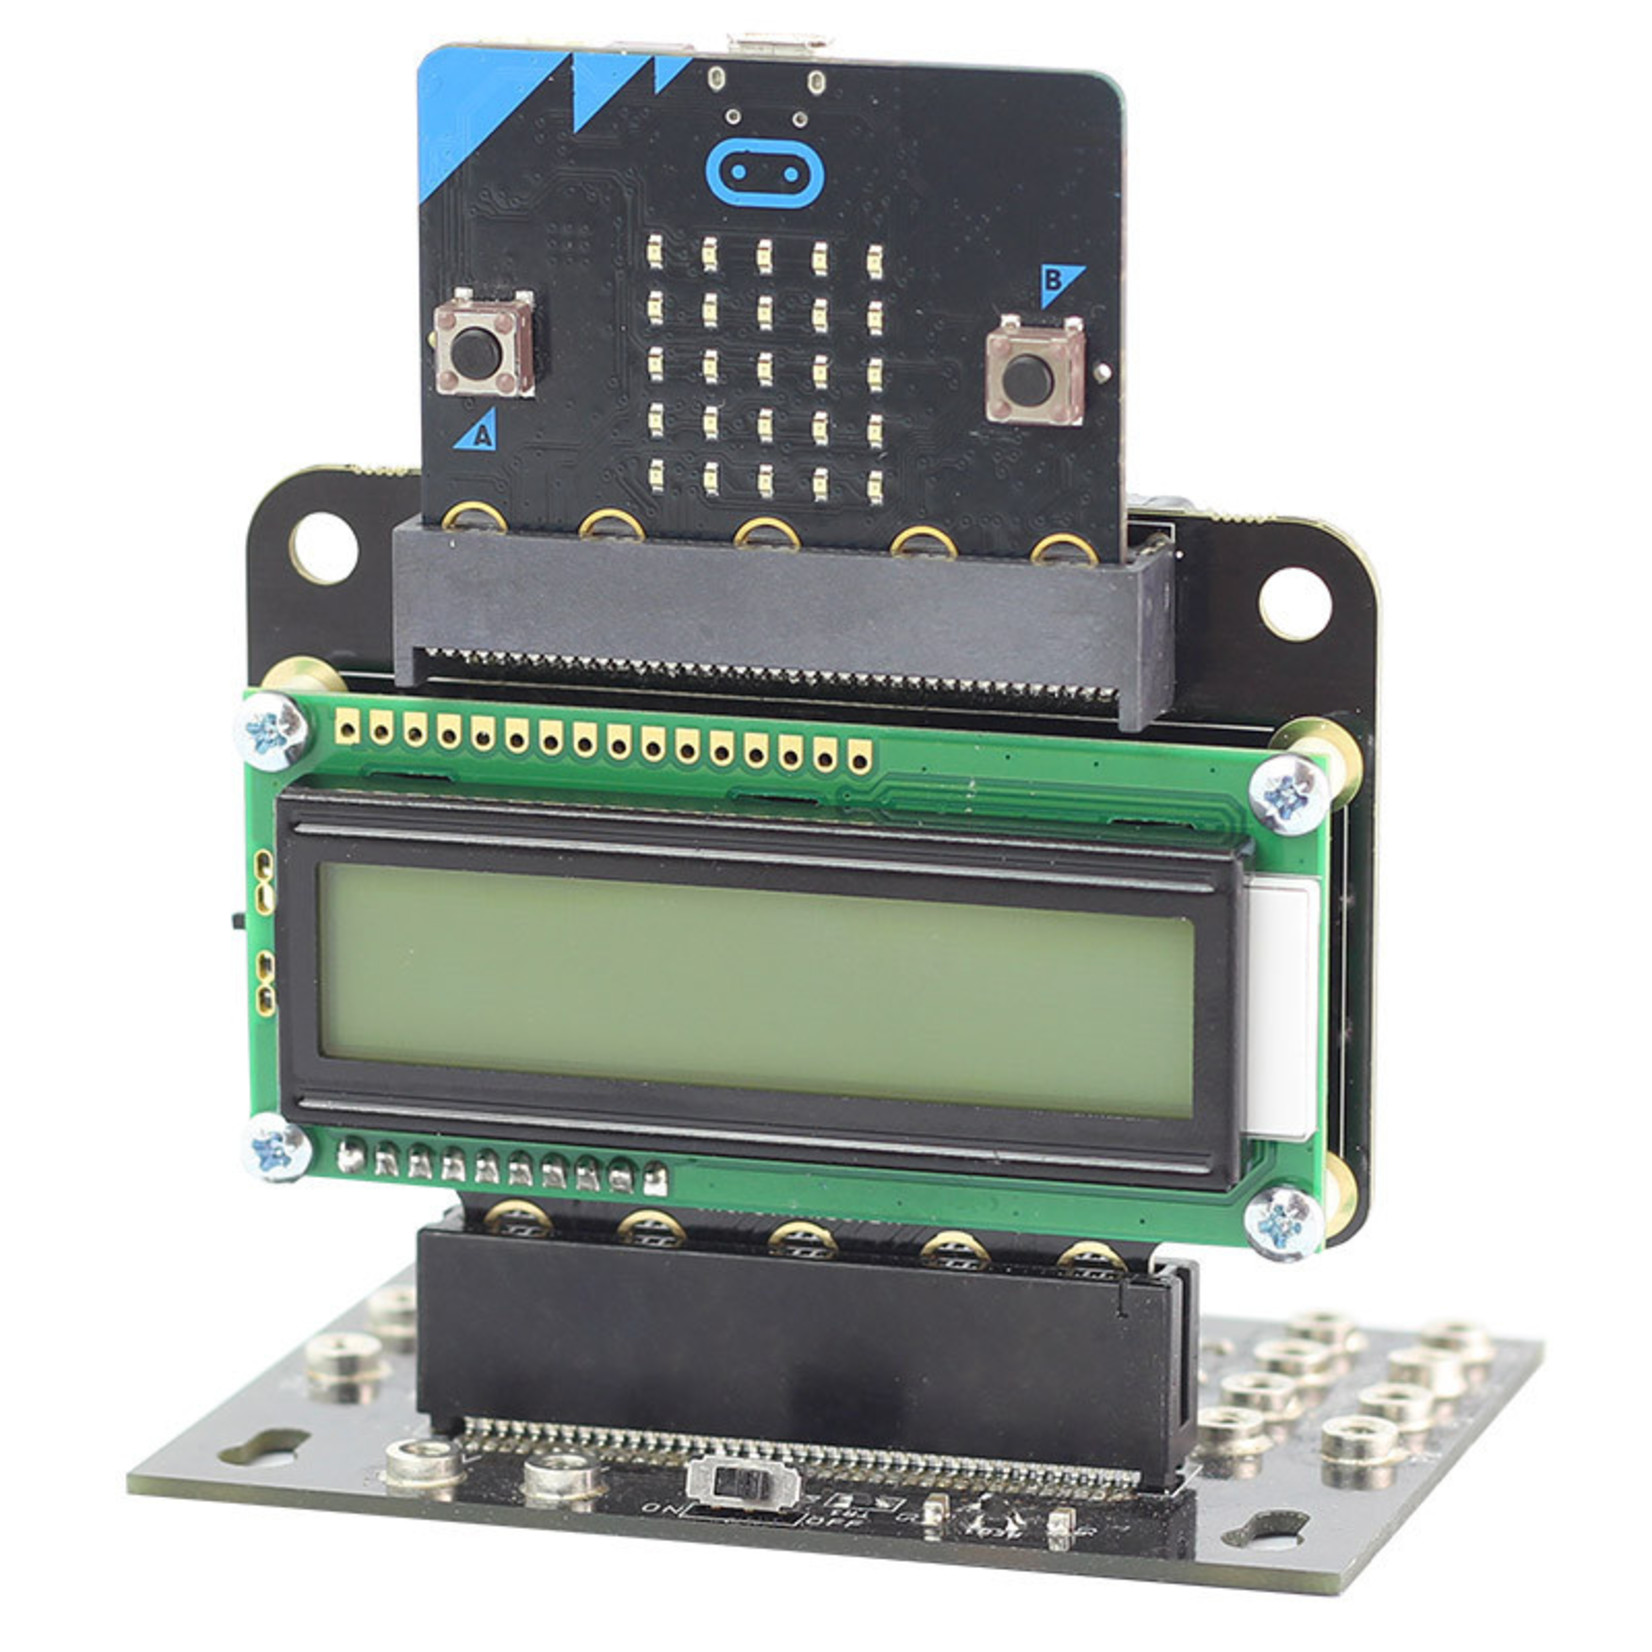 Kitronik :VIEW text32 LCD Screen for the BBC micro bit